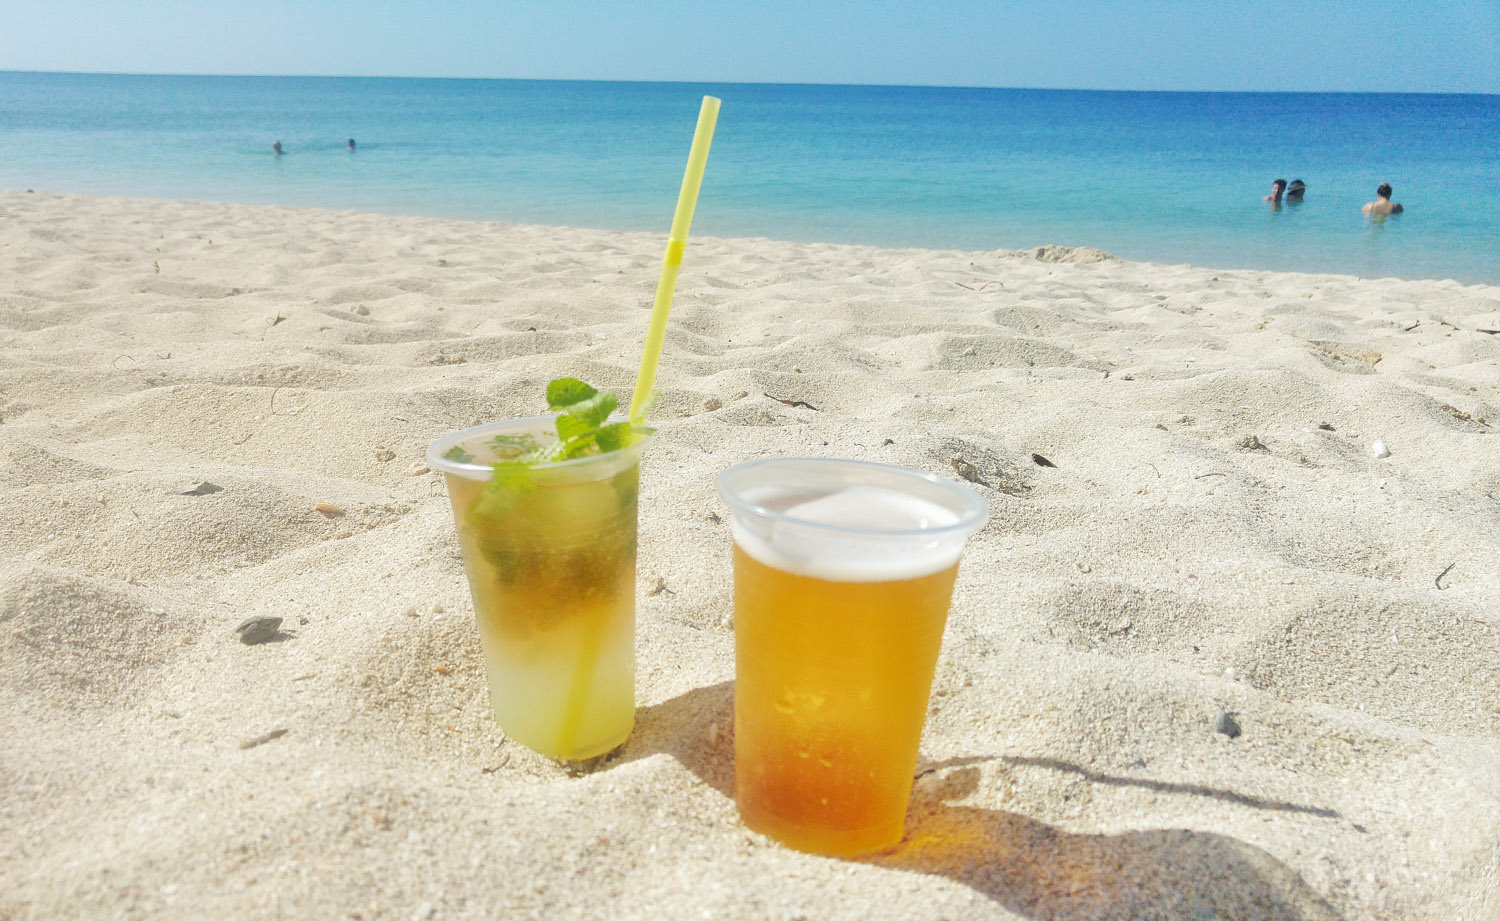 Enjoying a cold beer and mojito on the beach for 1 CUC.